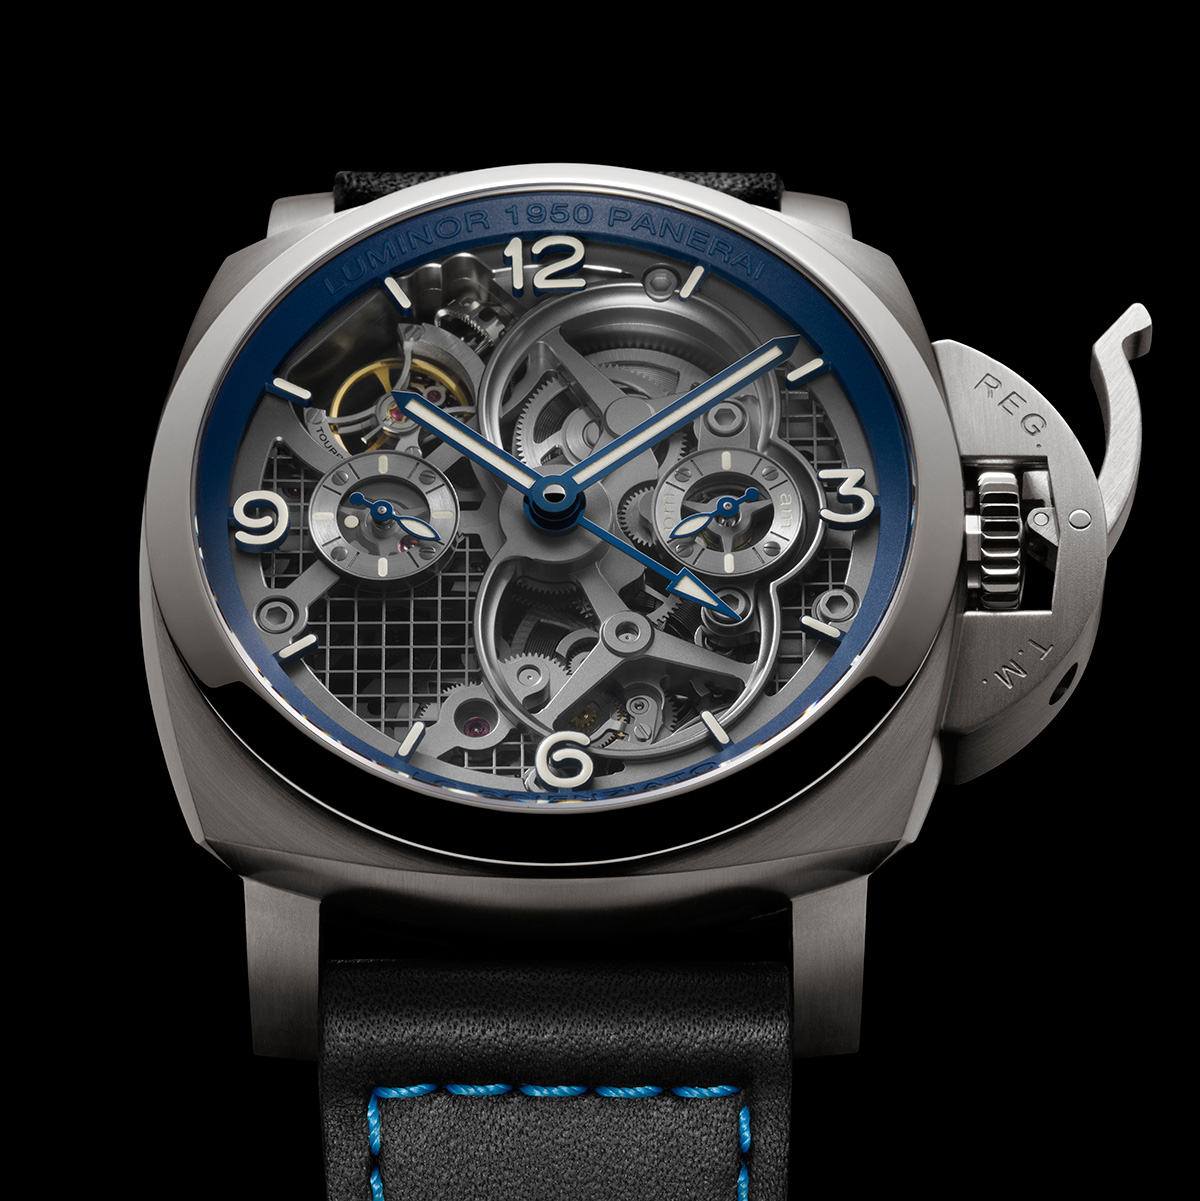 PANERAI LO SCIENZIATO LUMINOR 1950 TOURBILLON GMT TITANIO – 47mm